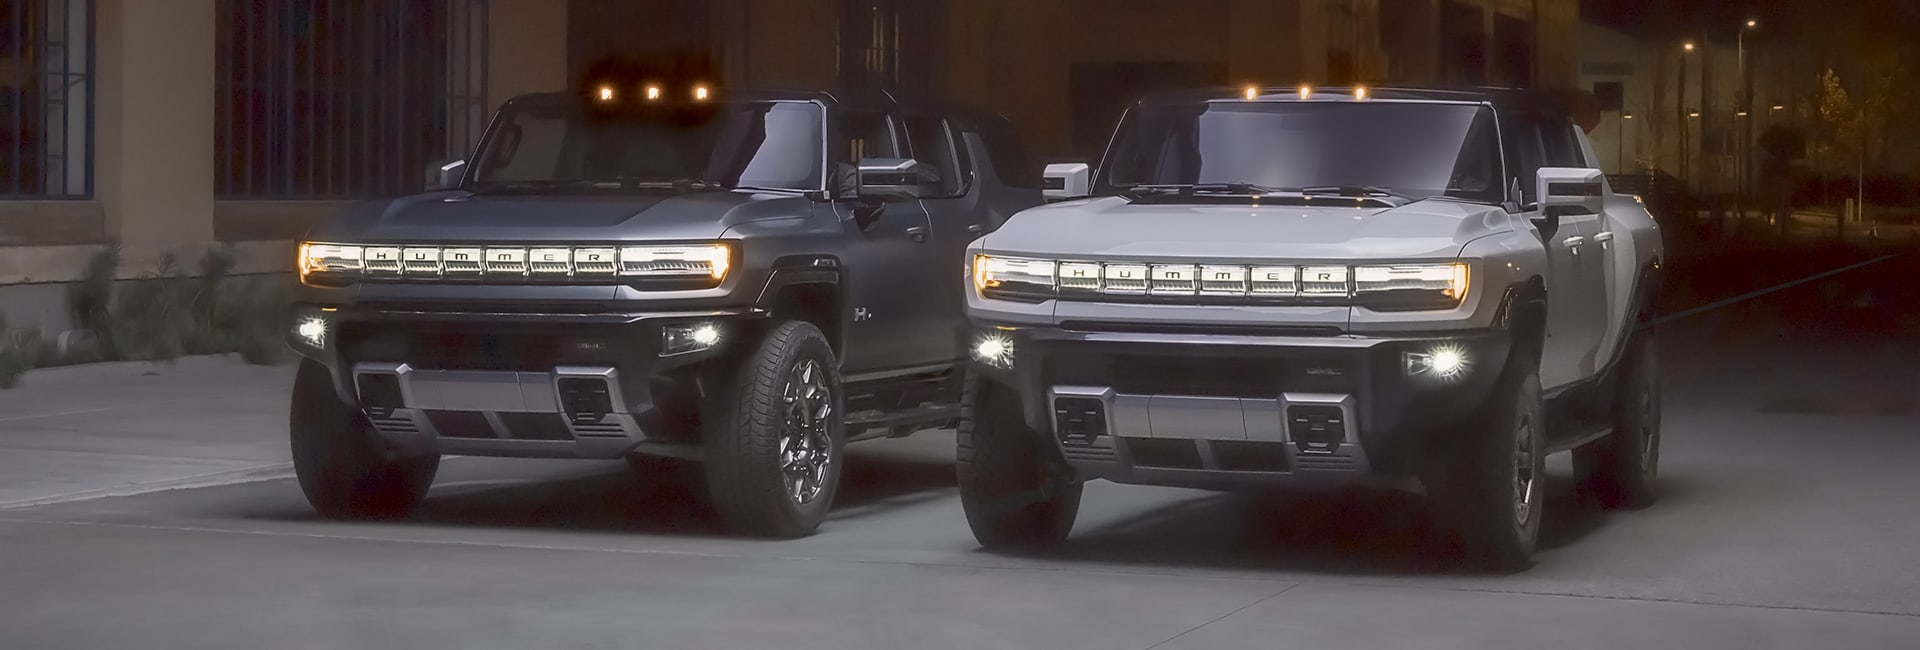 2022 GMC Hummer EV Truck and SUV